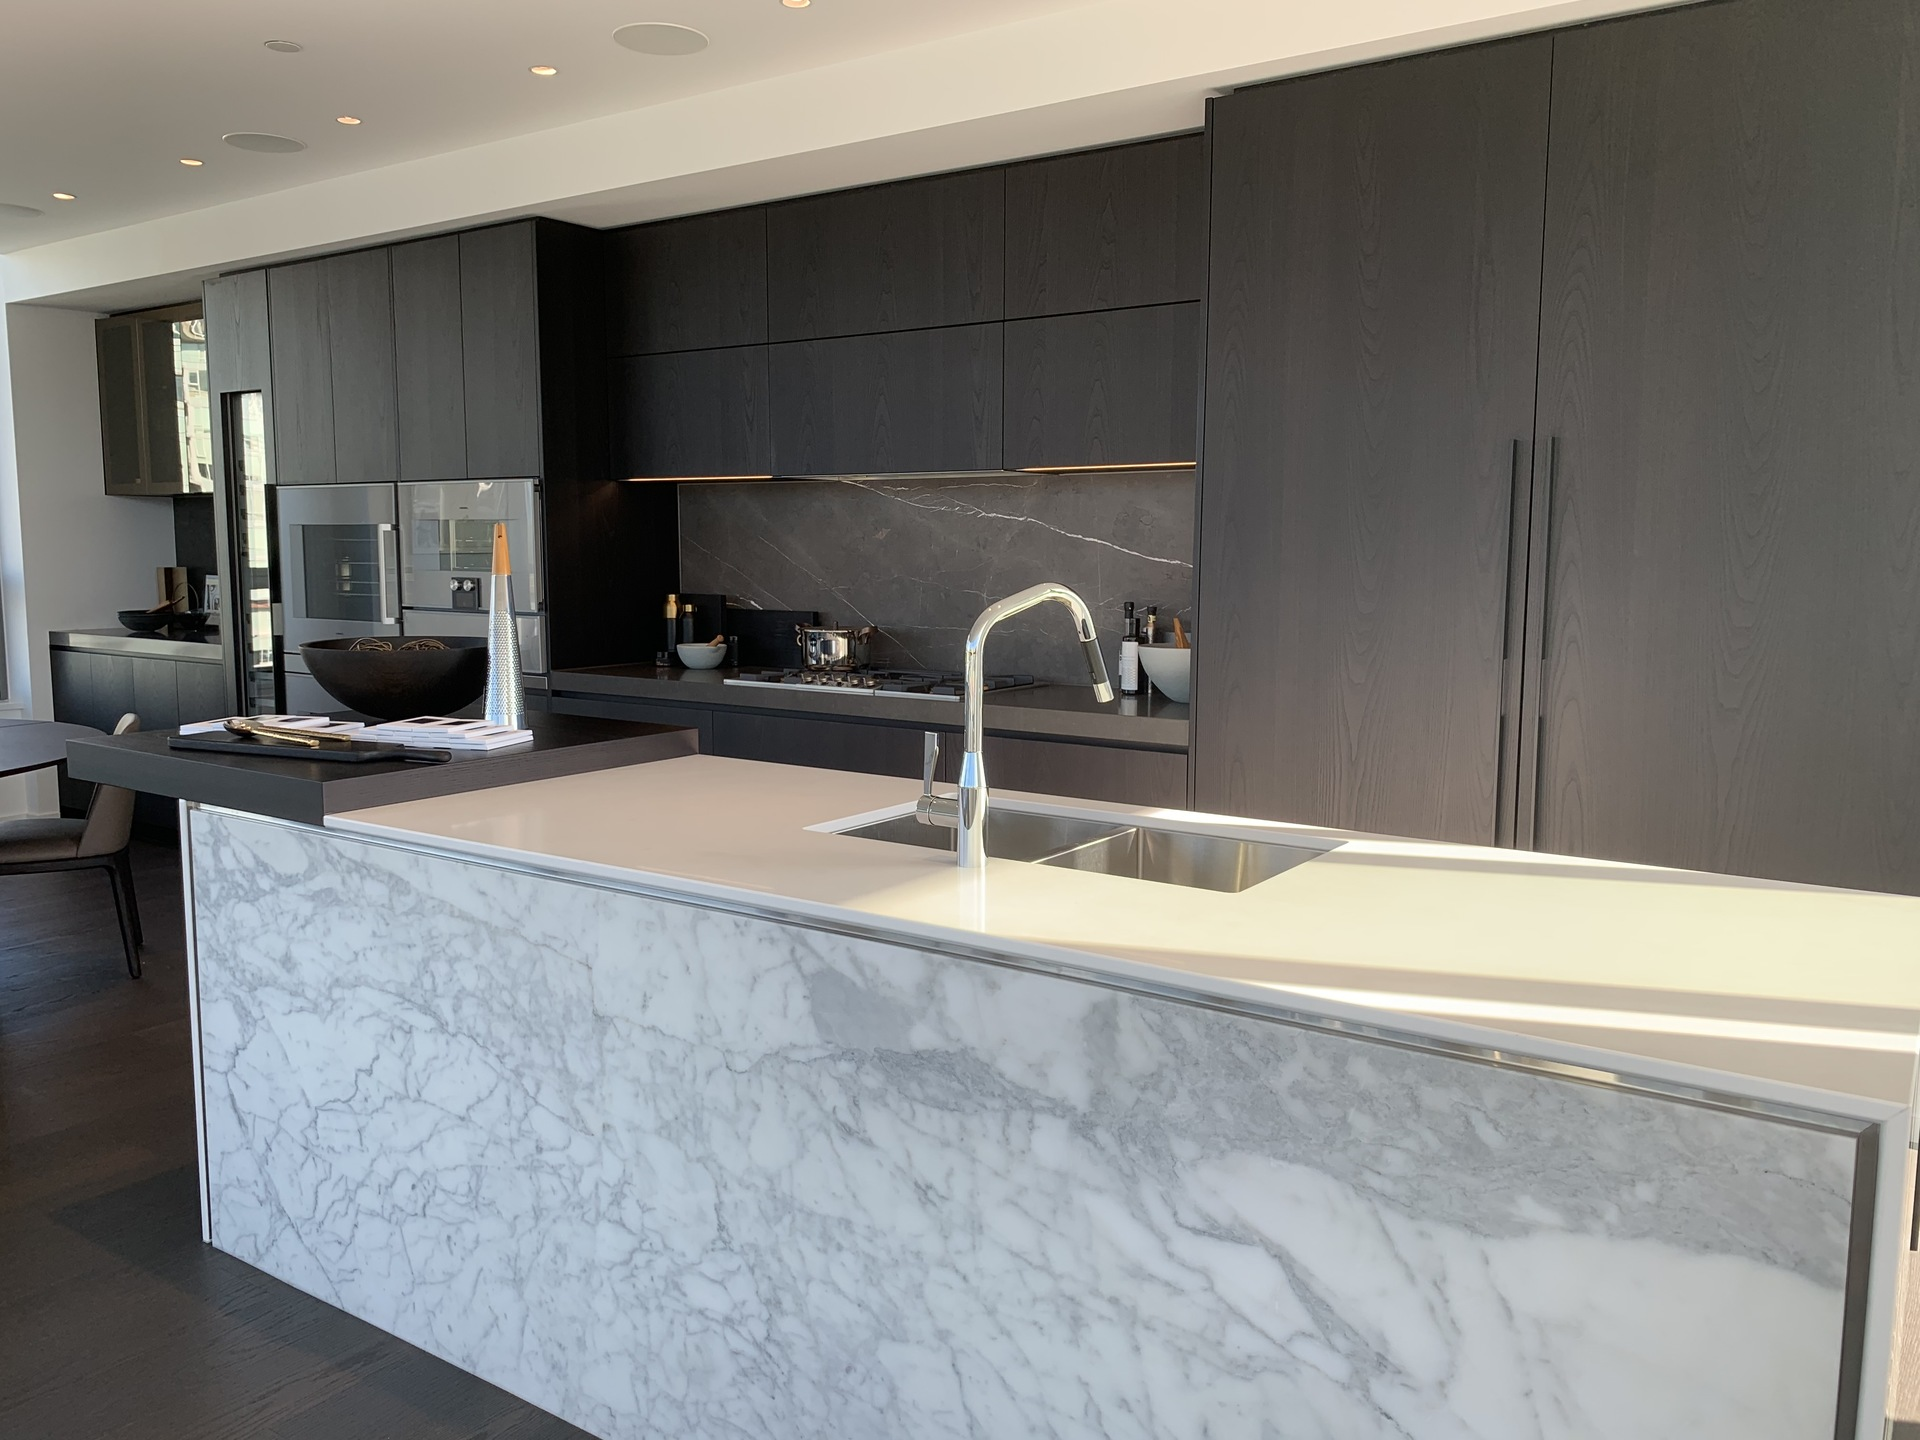 Tesoro kitchen with marble slab kitchen island at TESORO 1551 Quebec - The Creek Building 5 (1551 Quebec, False Creek, Vancouver West)